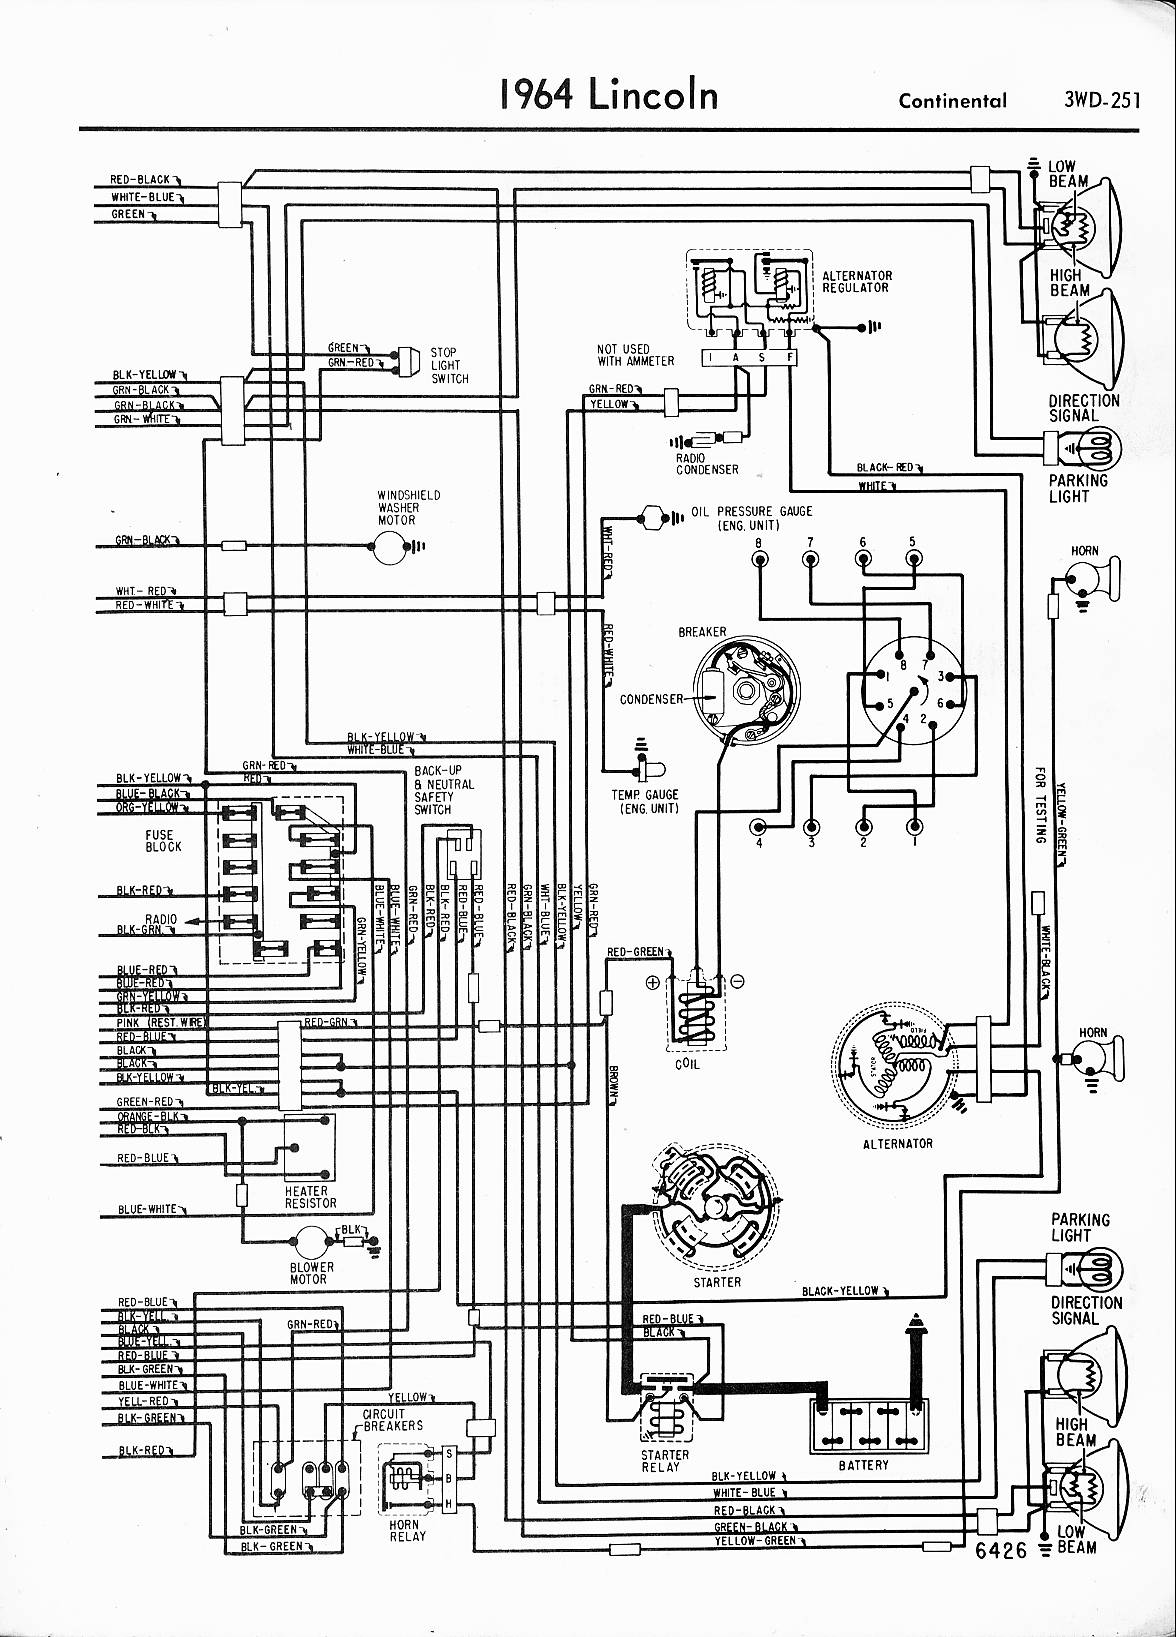 1960 mark v window wiring diagram   33 wiring diagram